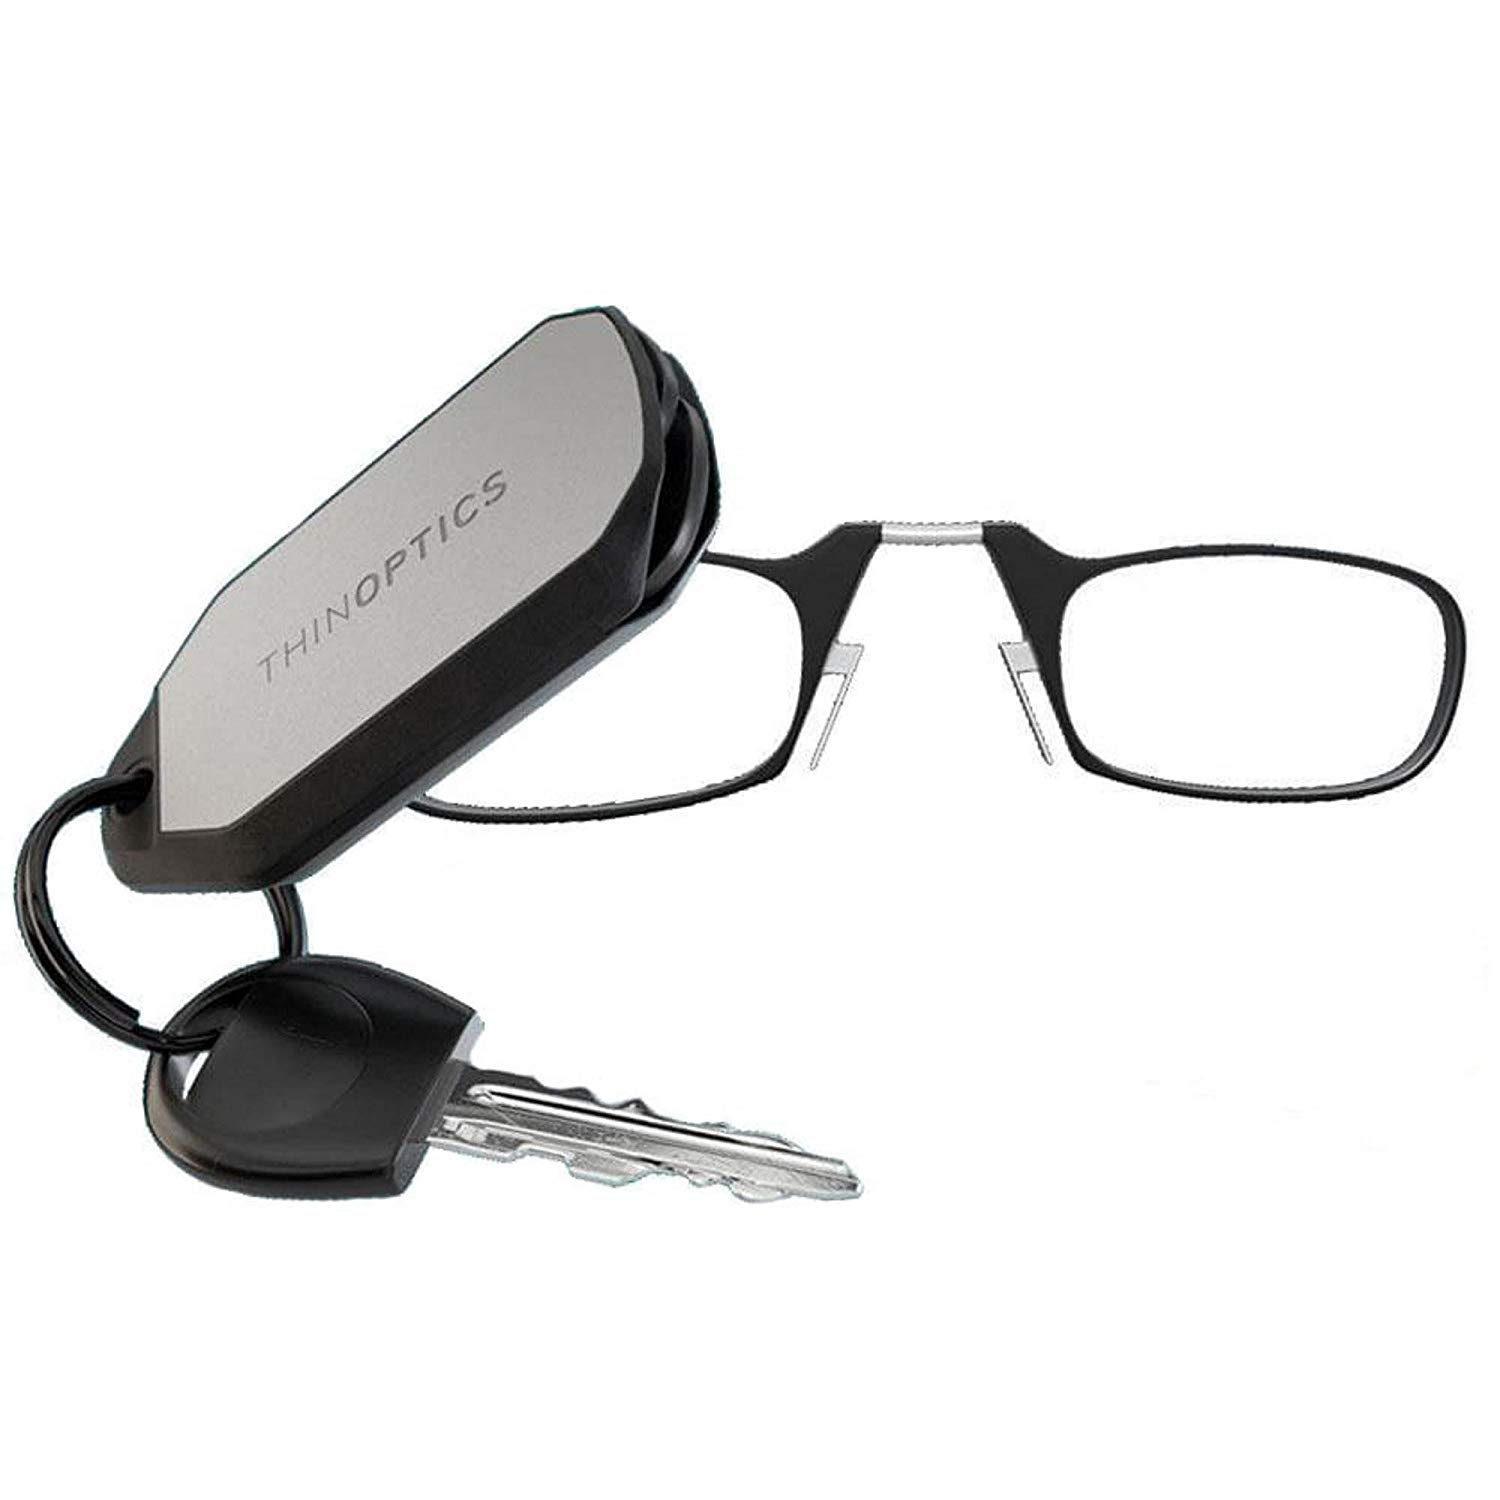 ThinOptics Reading Glasses + Keychain Case | Black Frame, 1.50 Strength Readers by ThinOptics